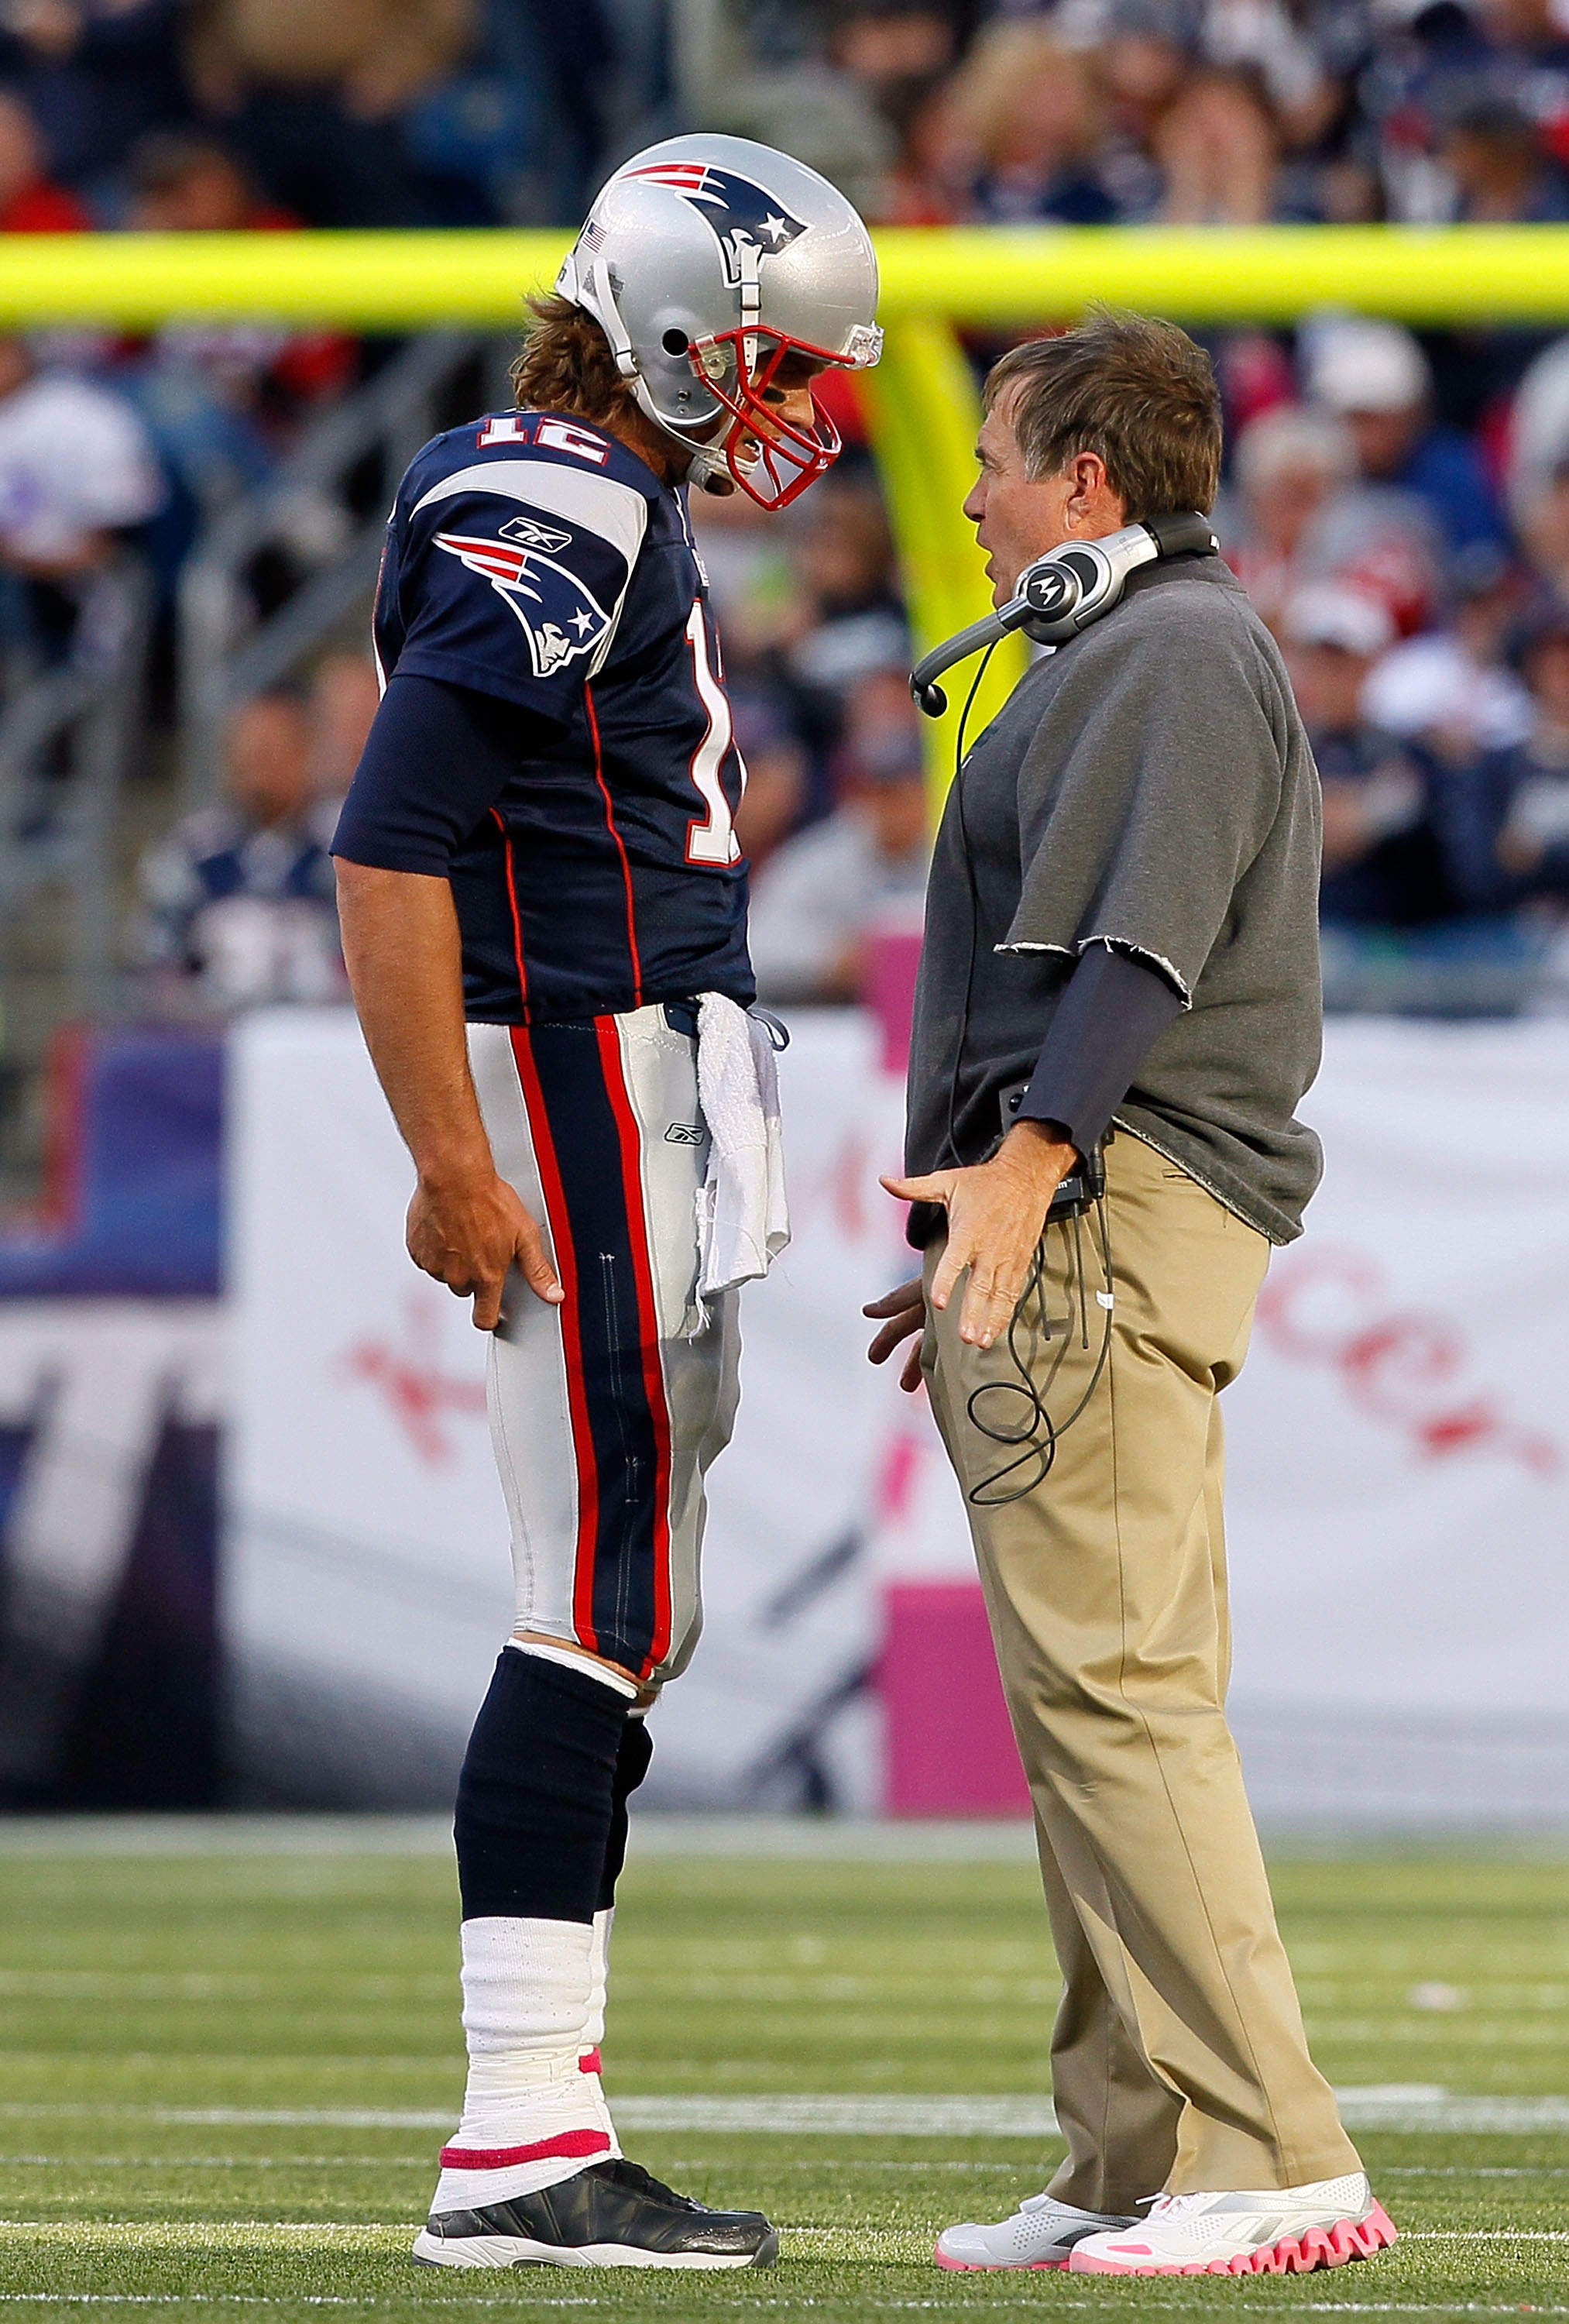 FOXBORO, MA - OCTOBER 17:  Coach Bill Belichick of the New England Patriots talks to his quarterback Tom Brady during a game against the Baltimore Ravens at Gillette Stadium on October 17, 2010 in Foxboro, Massachusetts. (Photo by Jim Rogash/Getty Images)